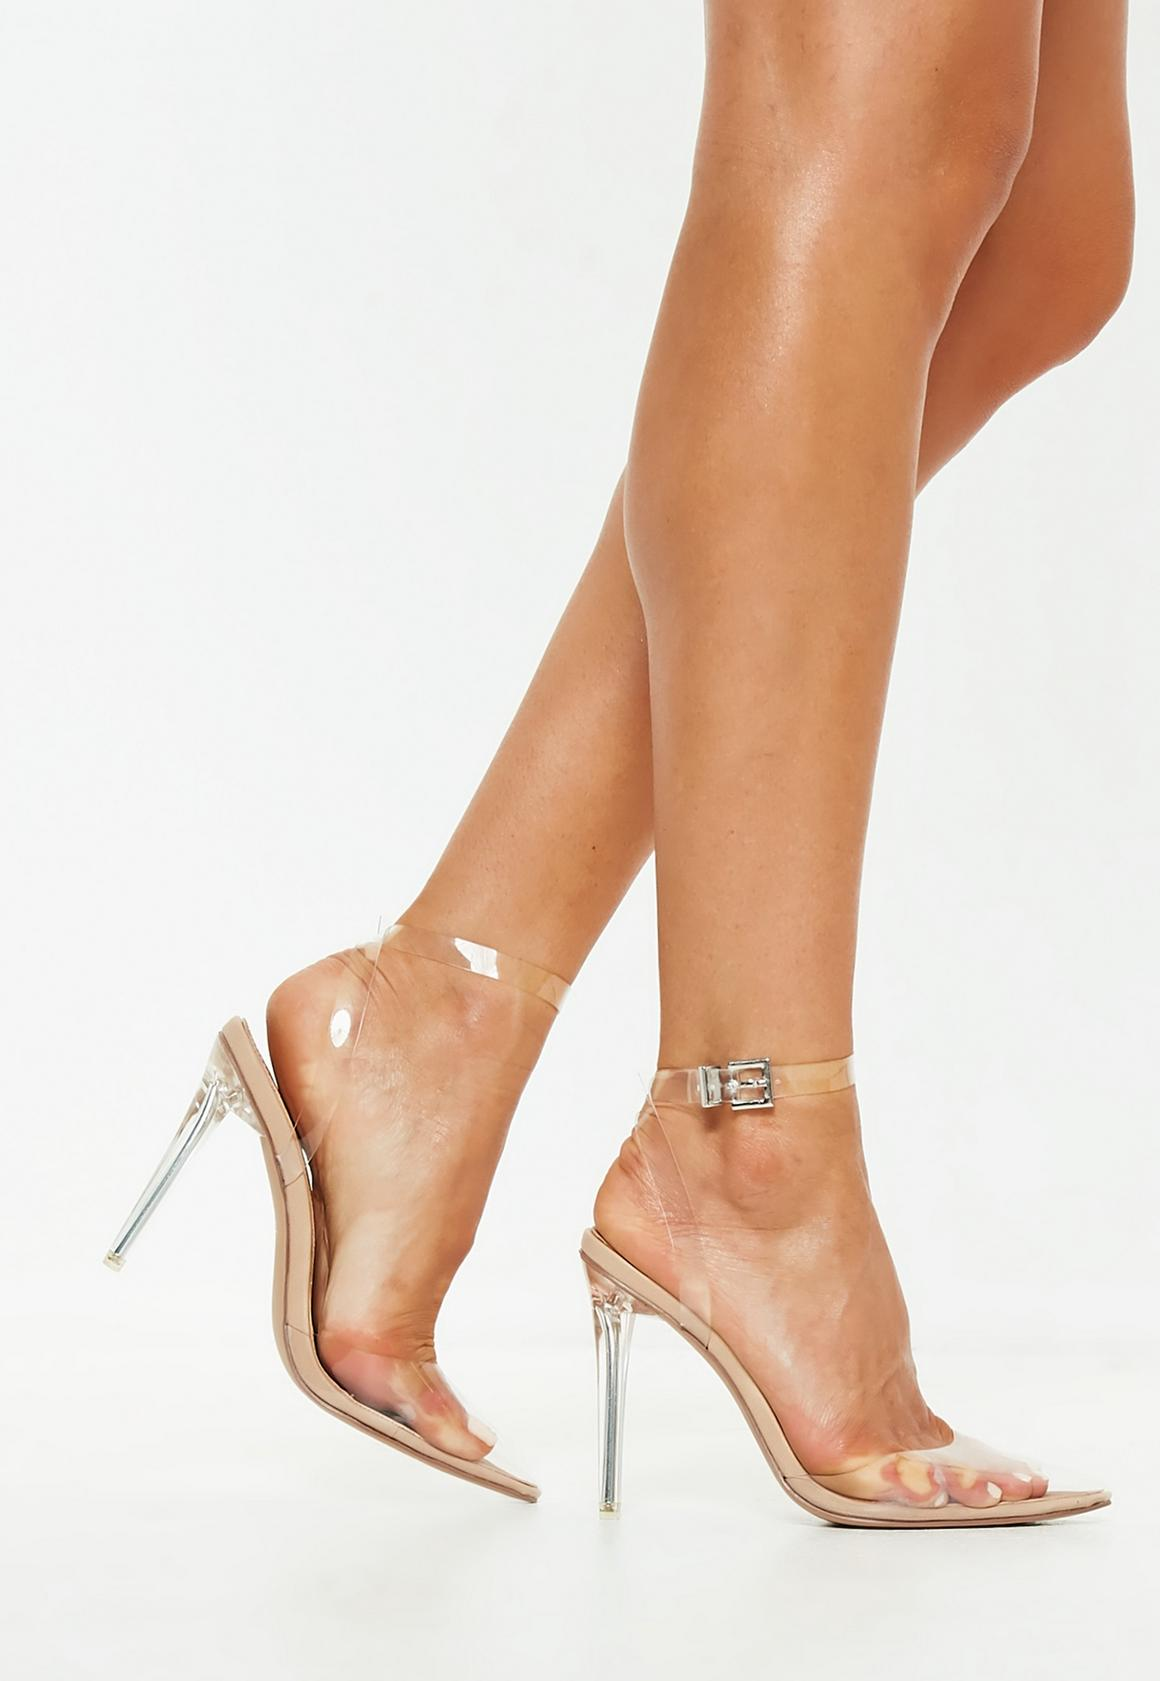 Nude Clear Ankle Strap Pumps, $59, Missguided